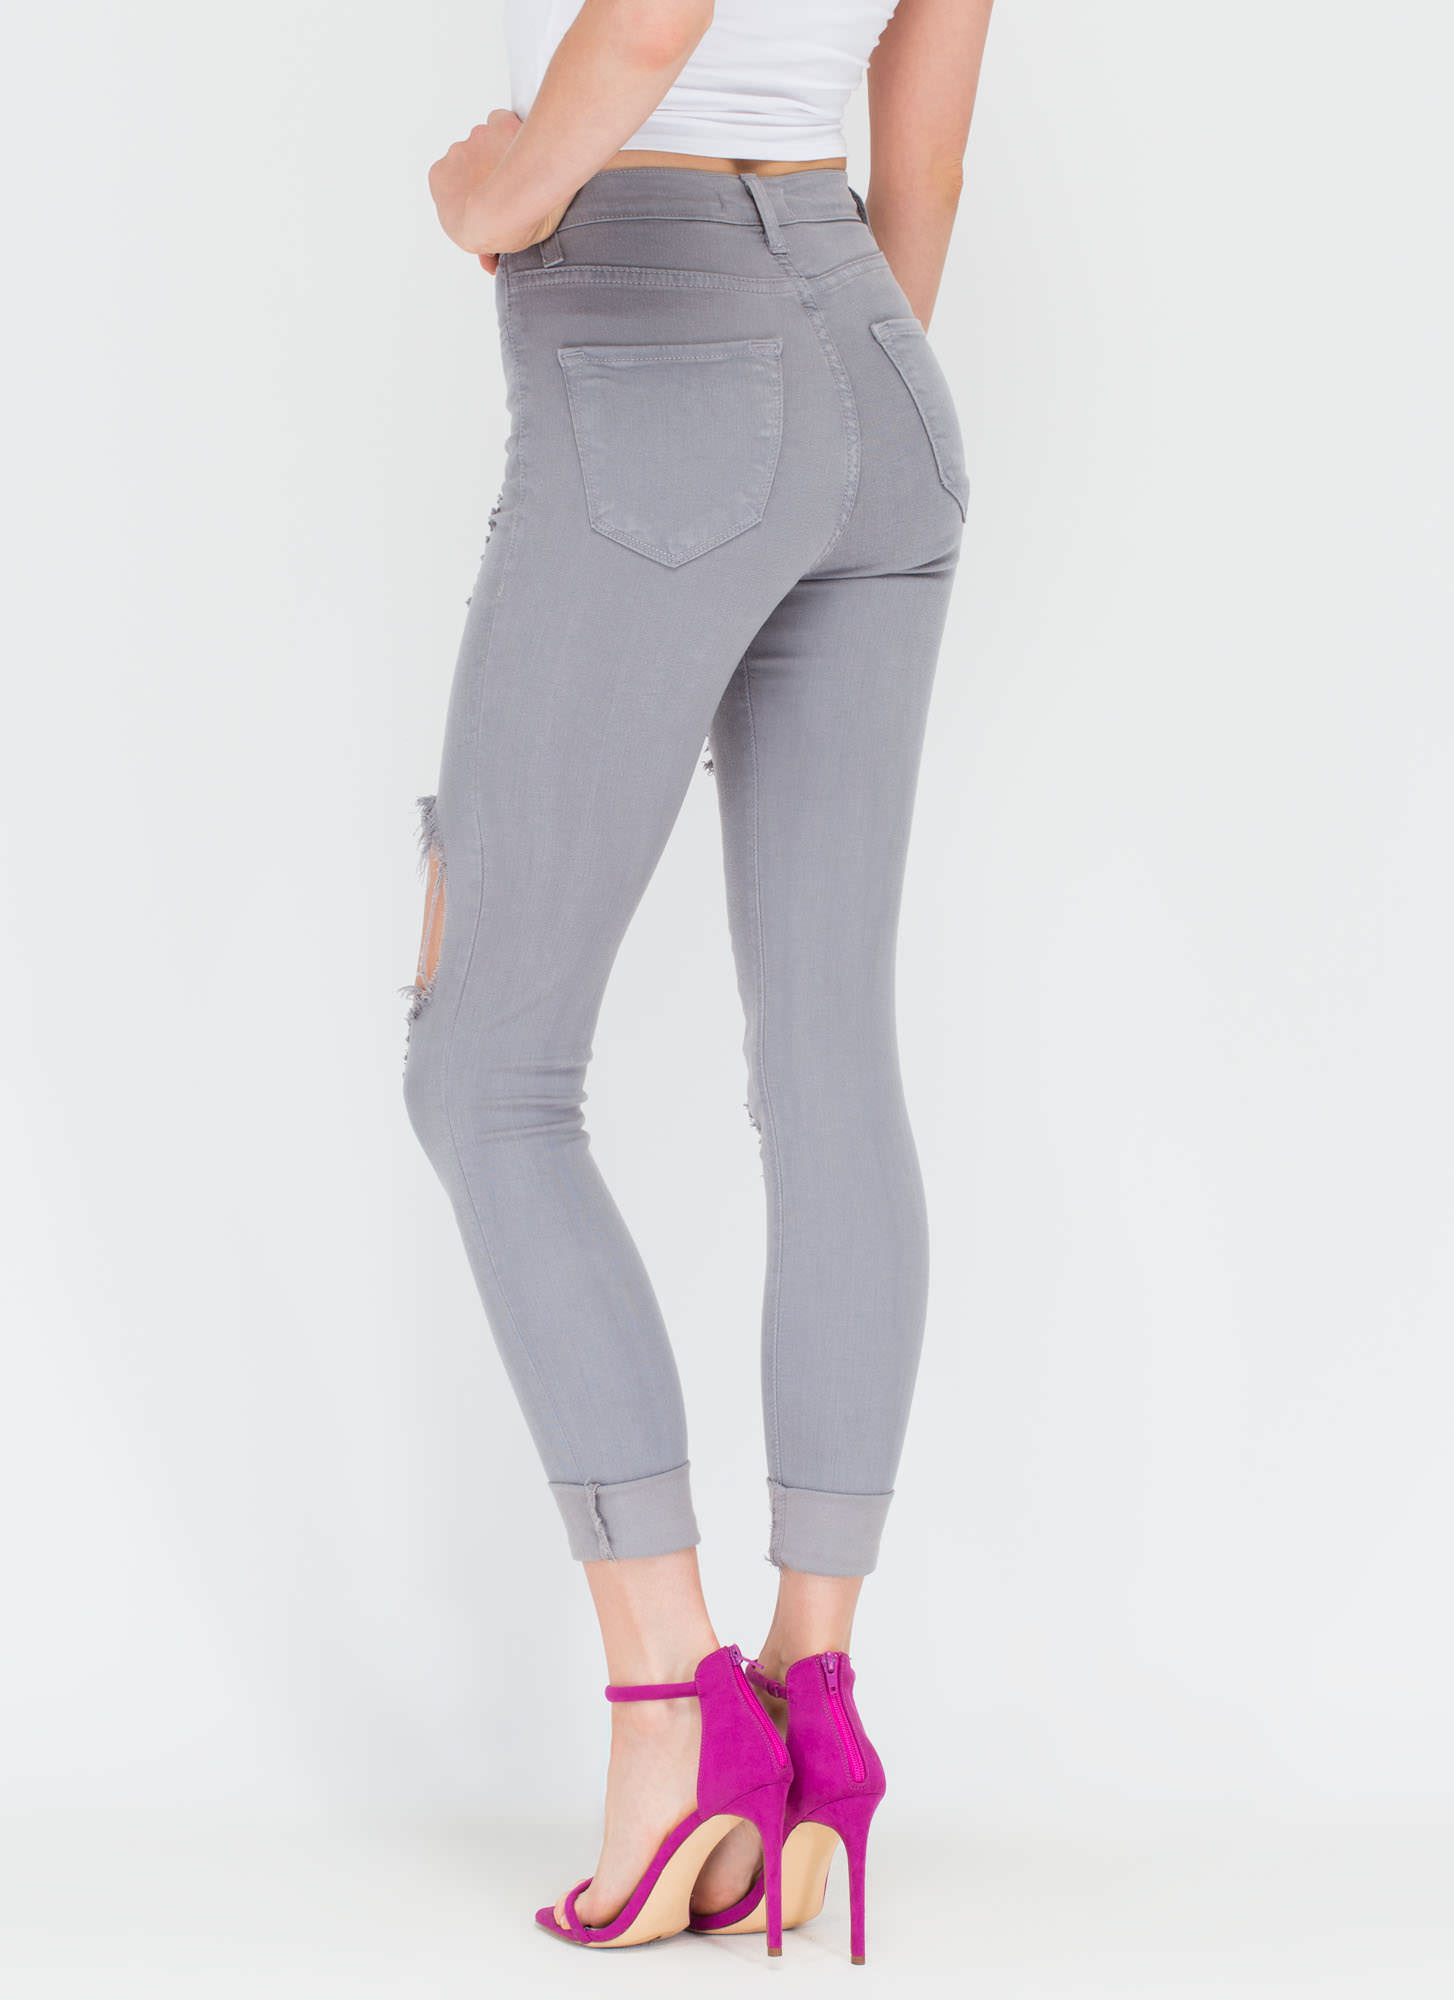 Shred-y To Rock Distressed Skinny Jeans GREY